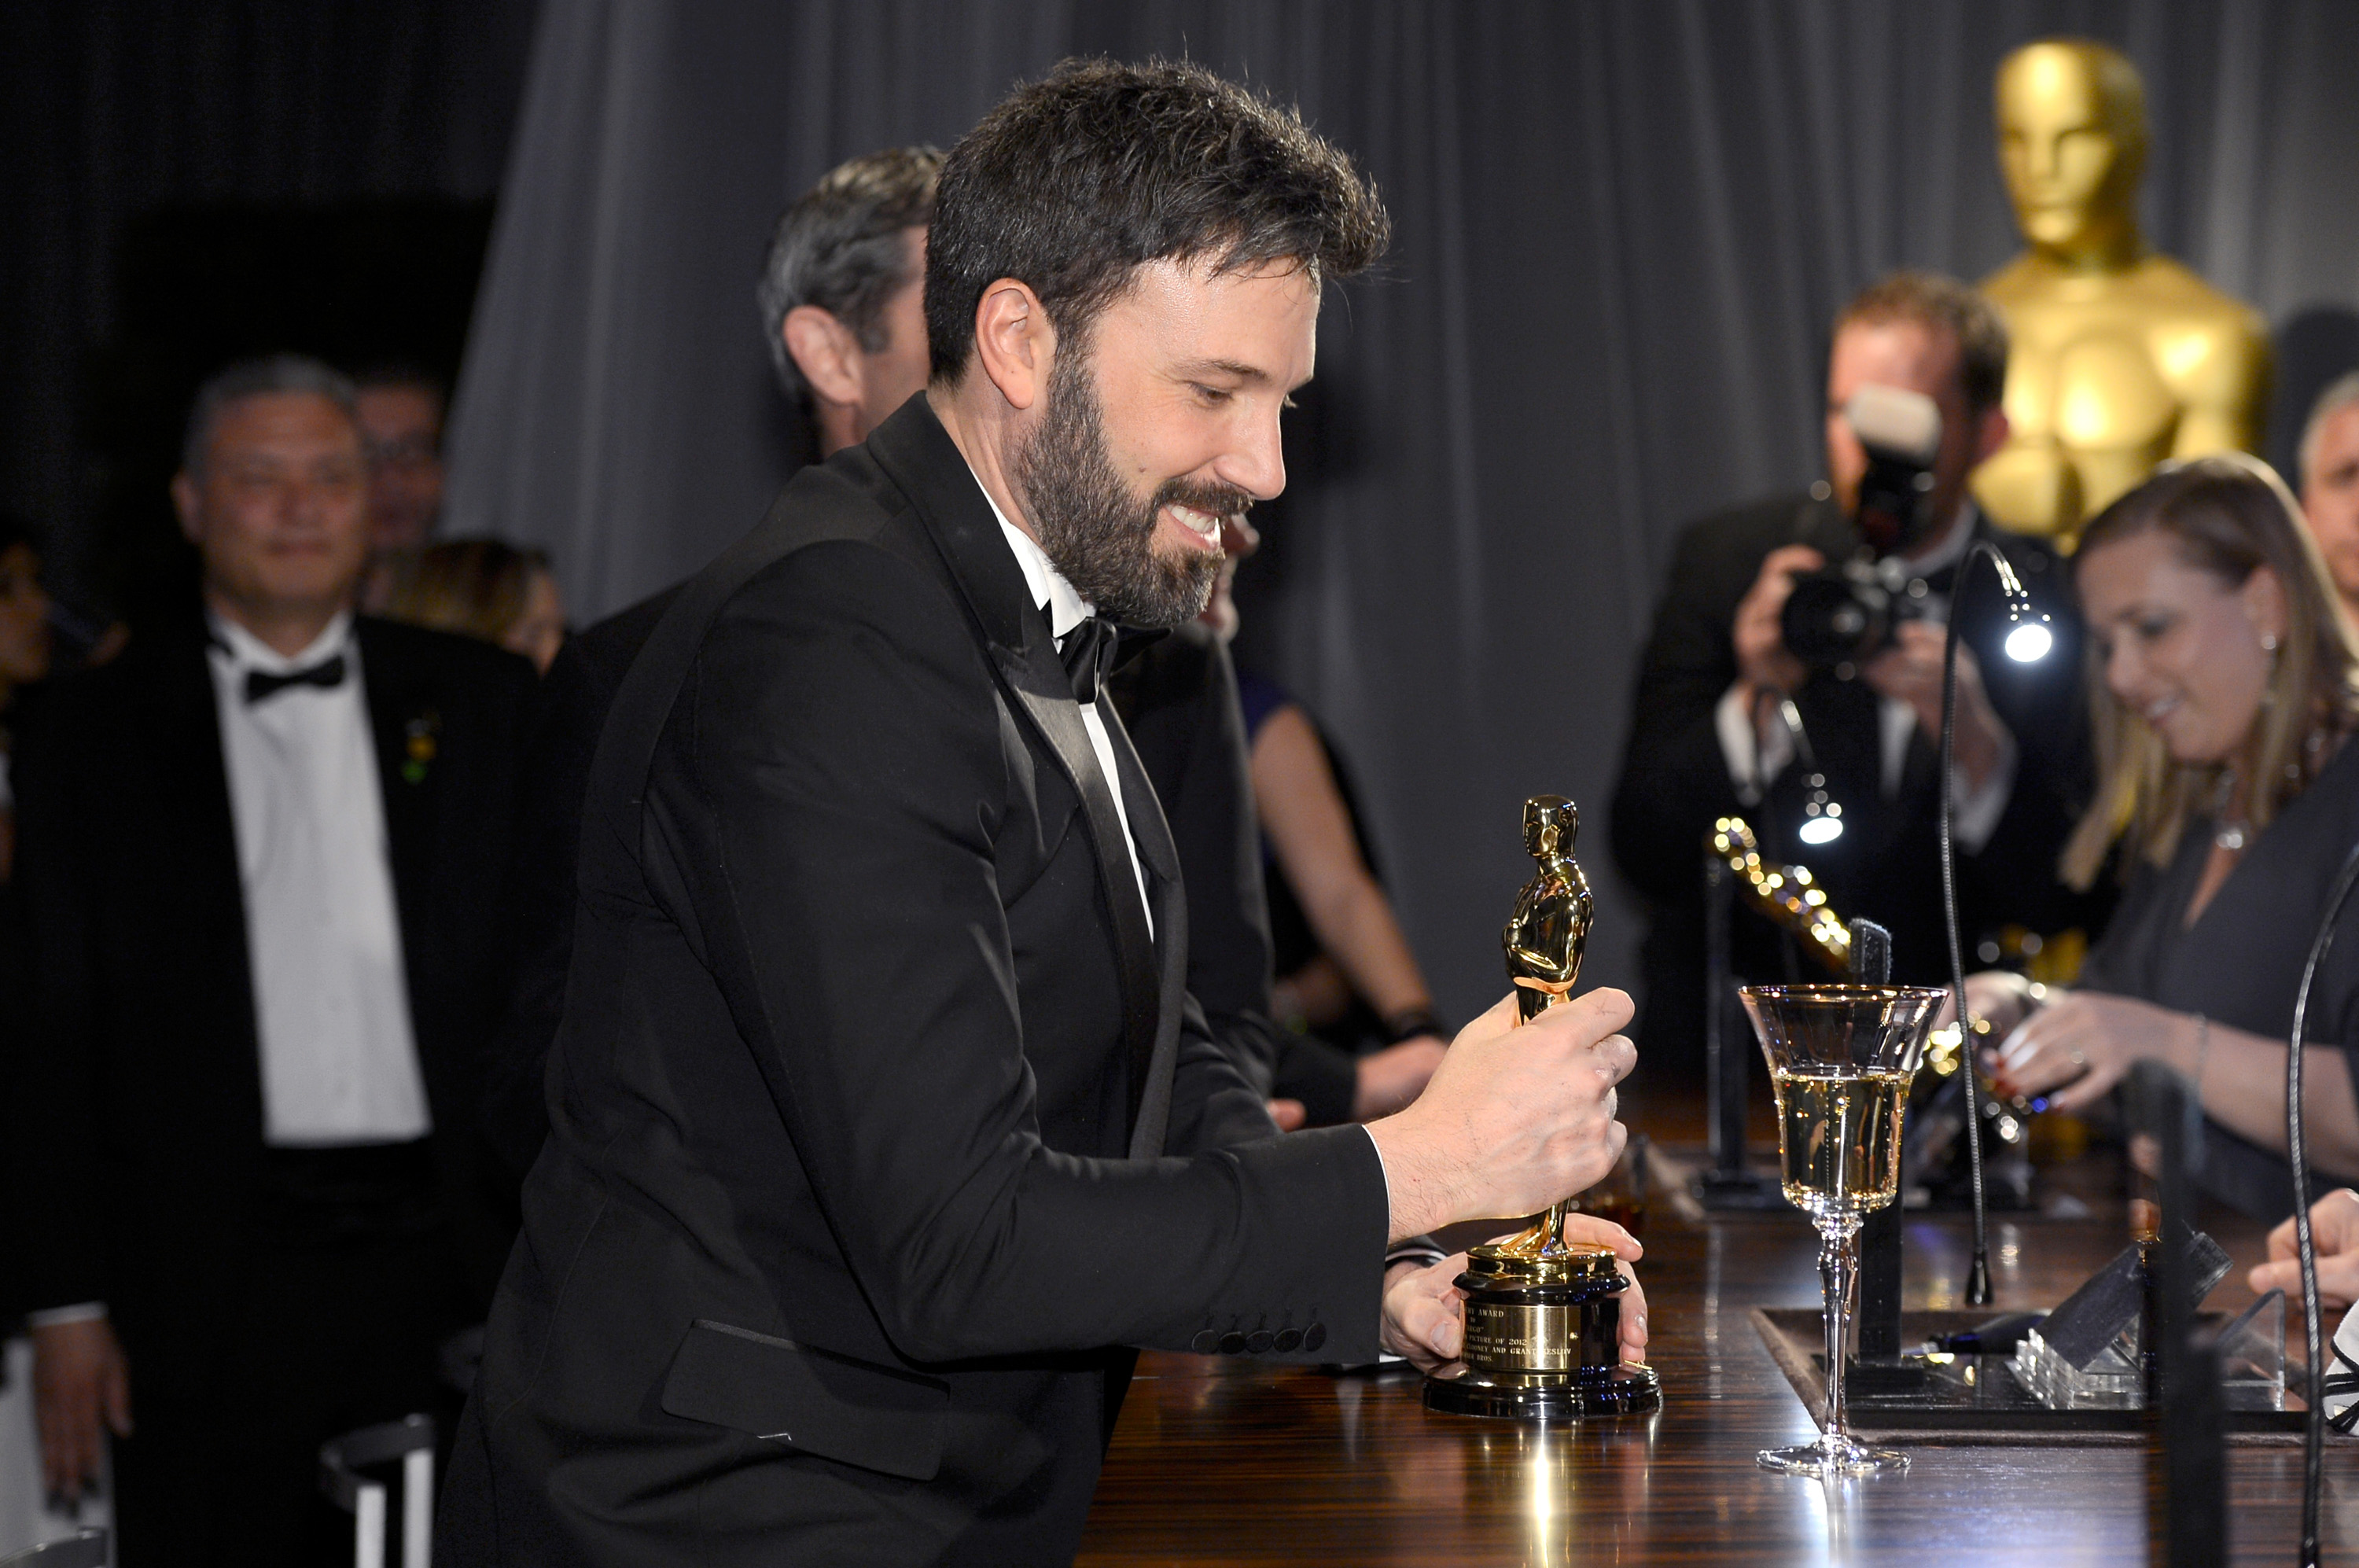 Ben Affleck took a good look at his Oscar during the Governors Ball.